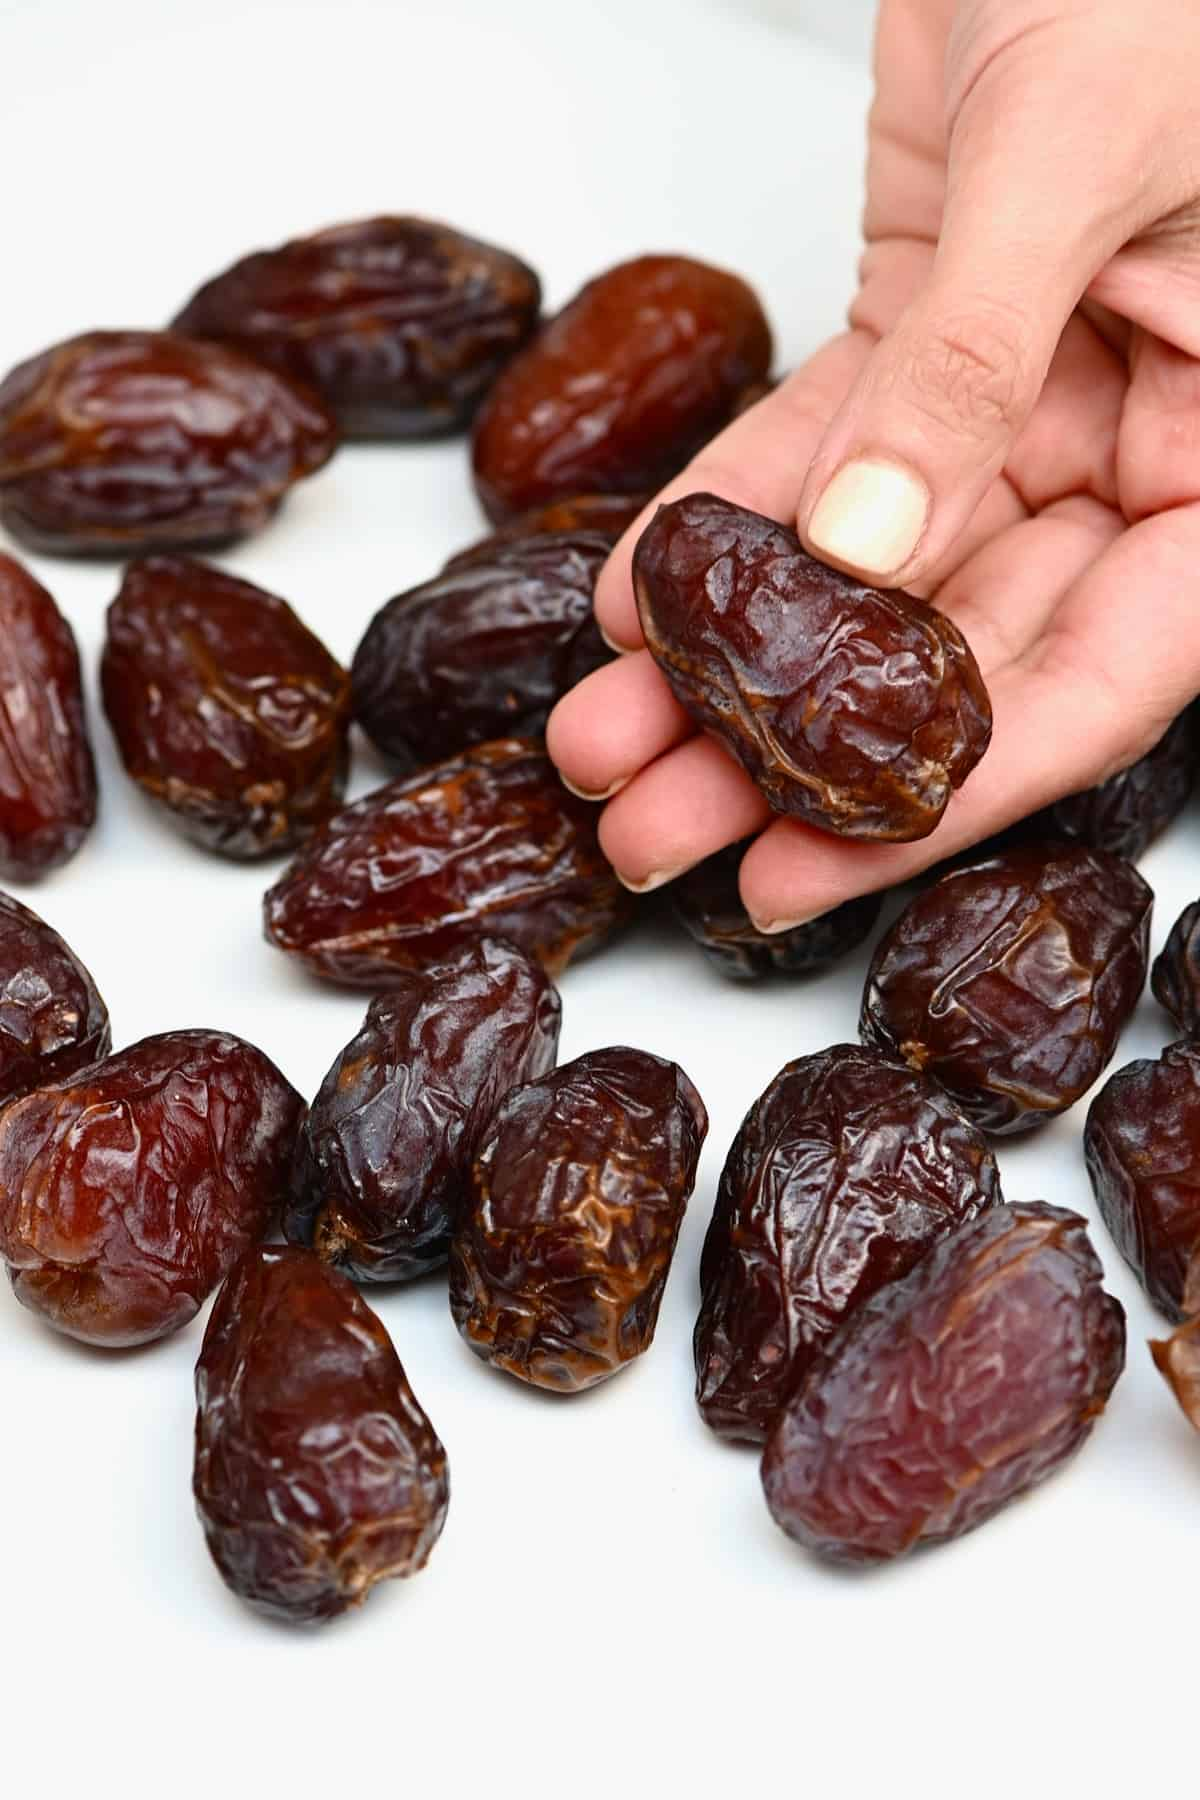 Holding a date